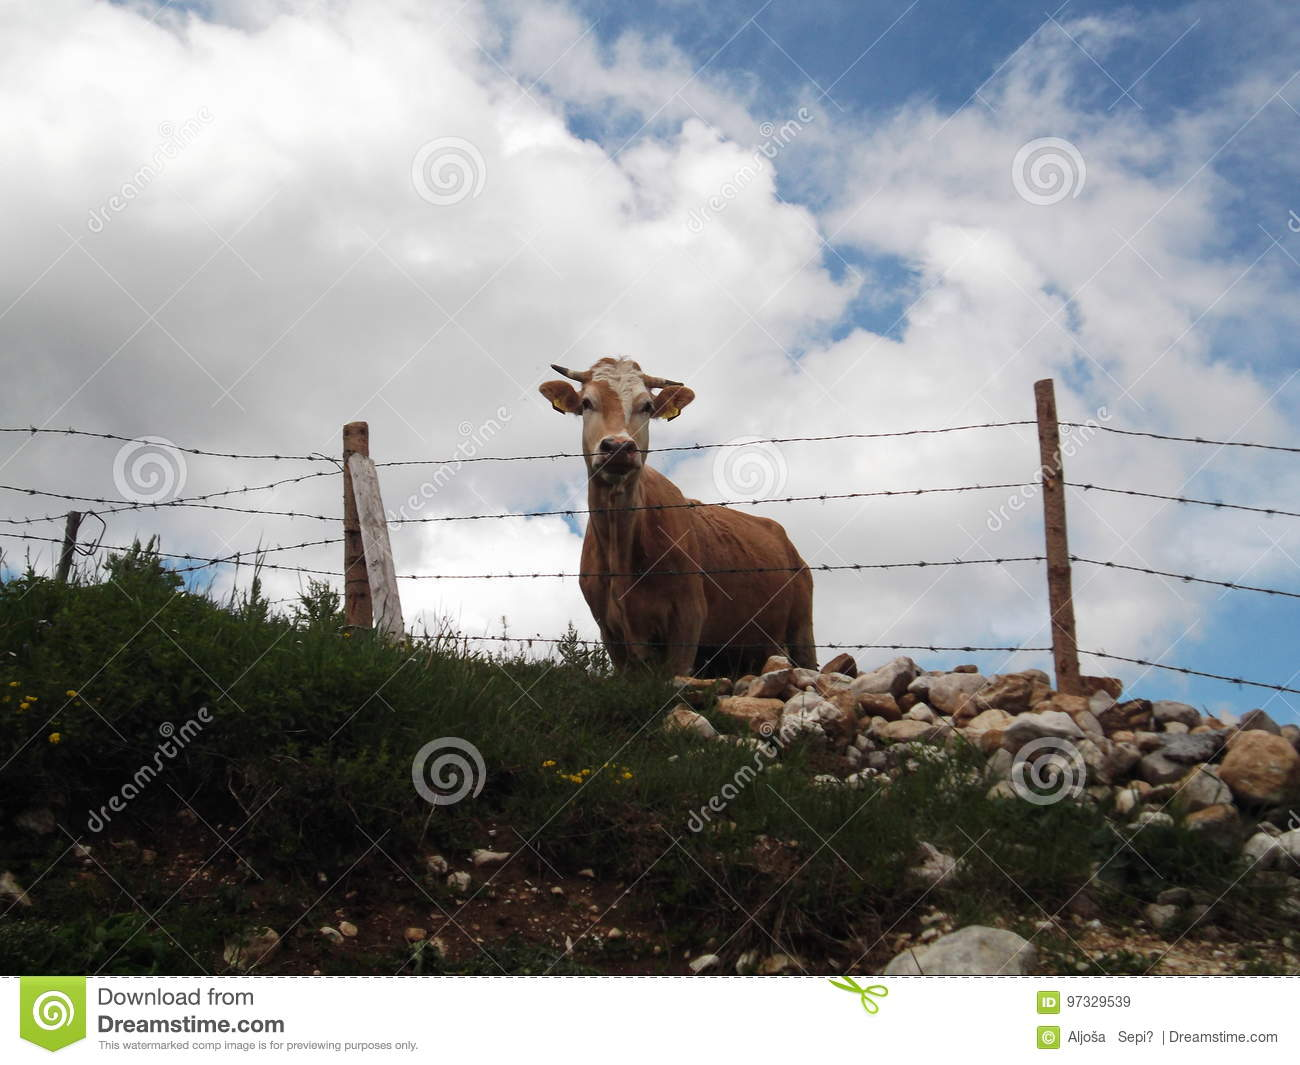 Cow behind the barbed wire stock image. Image of bale - 97329539